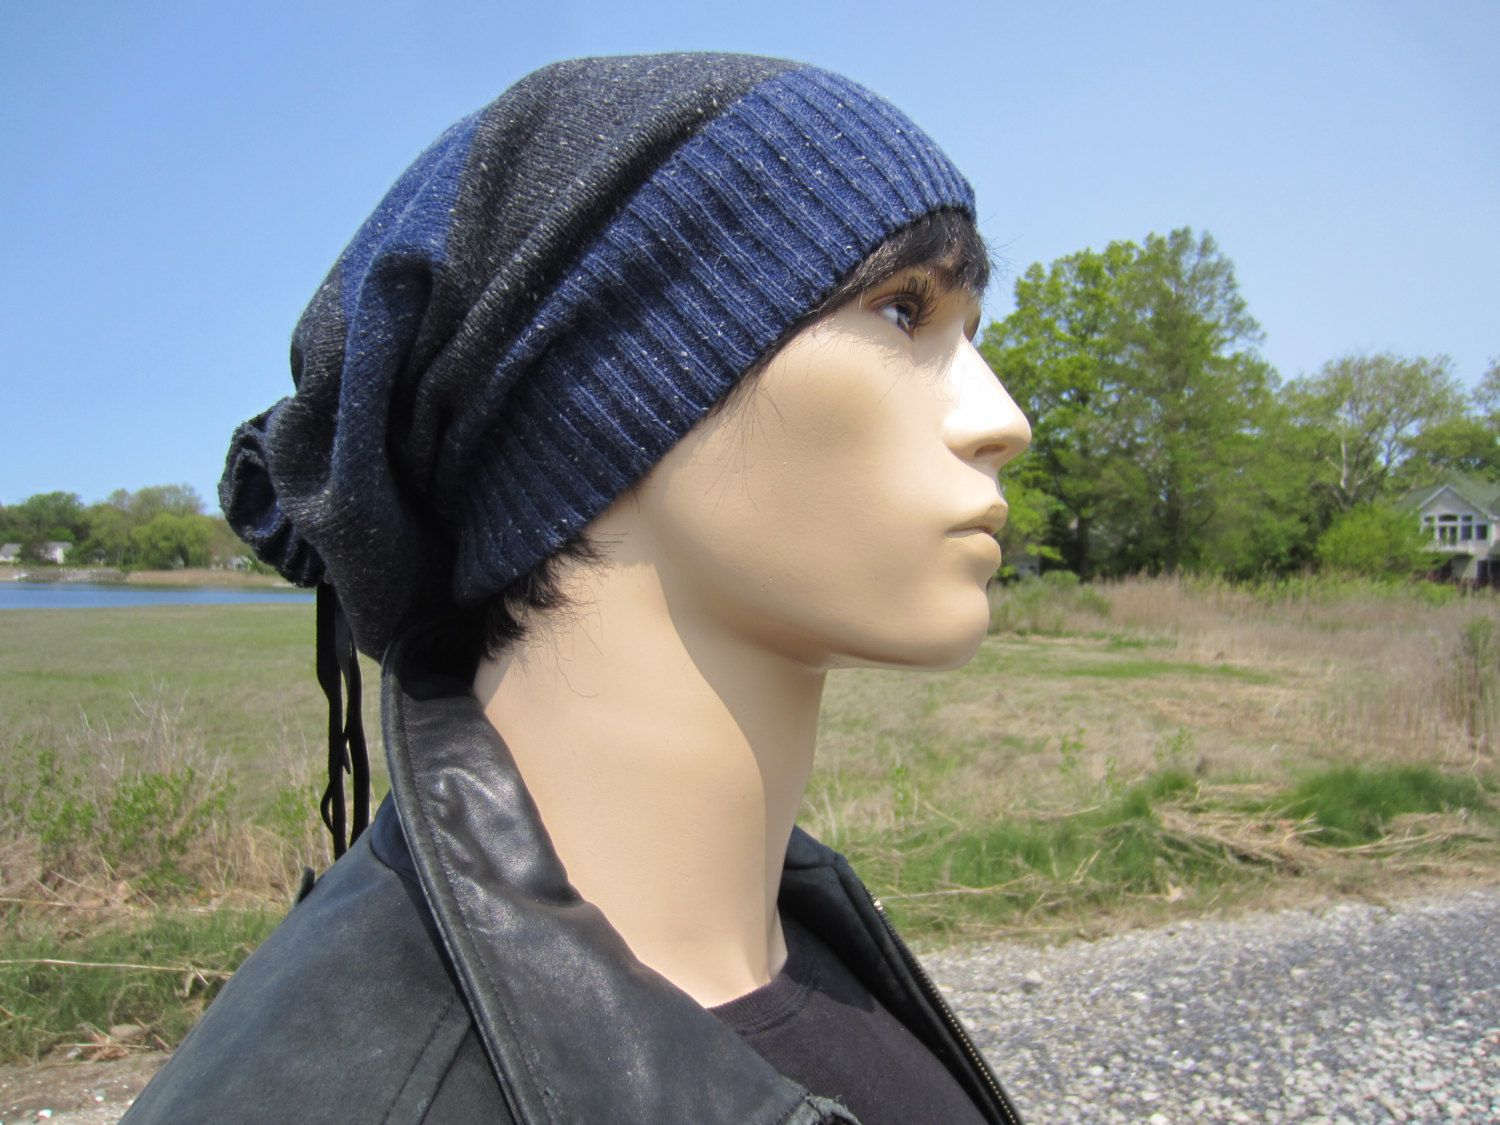 428d98f138490f Gifts for Men... Hats, Slouchy Beanies Extra long Tam Gray Blue Striped  Cotton Knit Black Leather Tie Back Tube Dread Hat A1619 by Vacationhouse on  Etsy